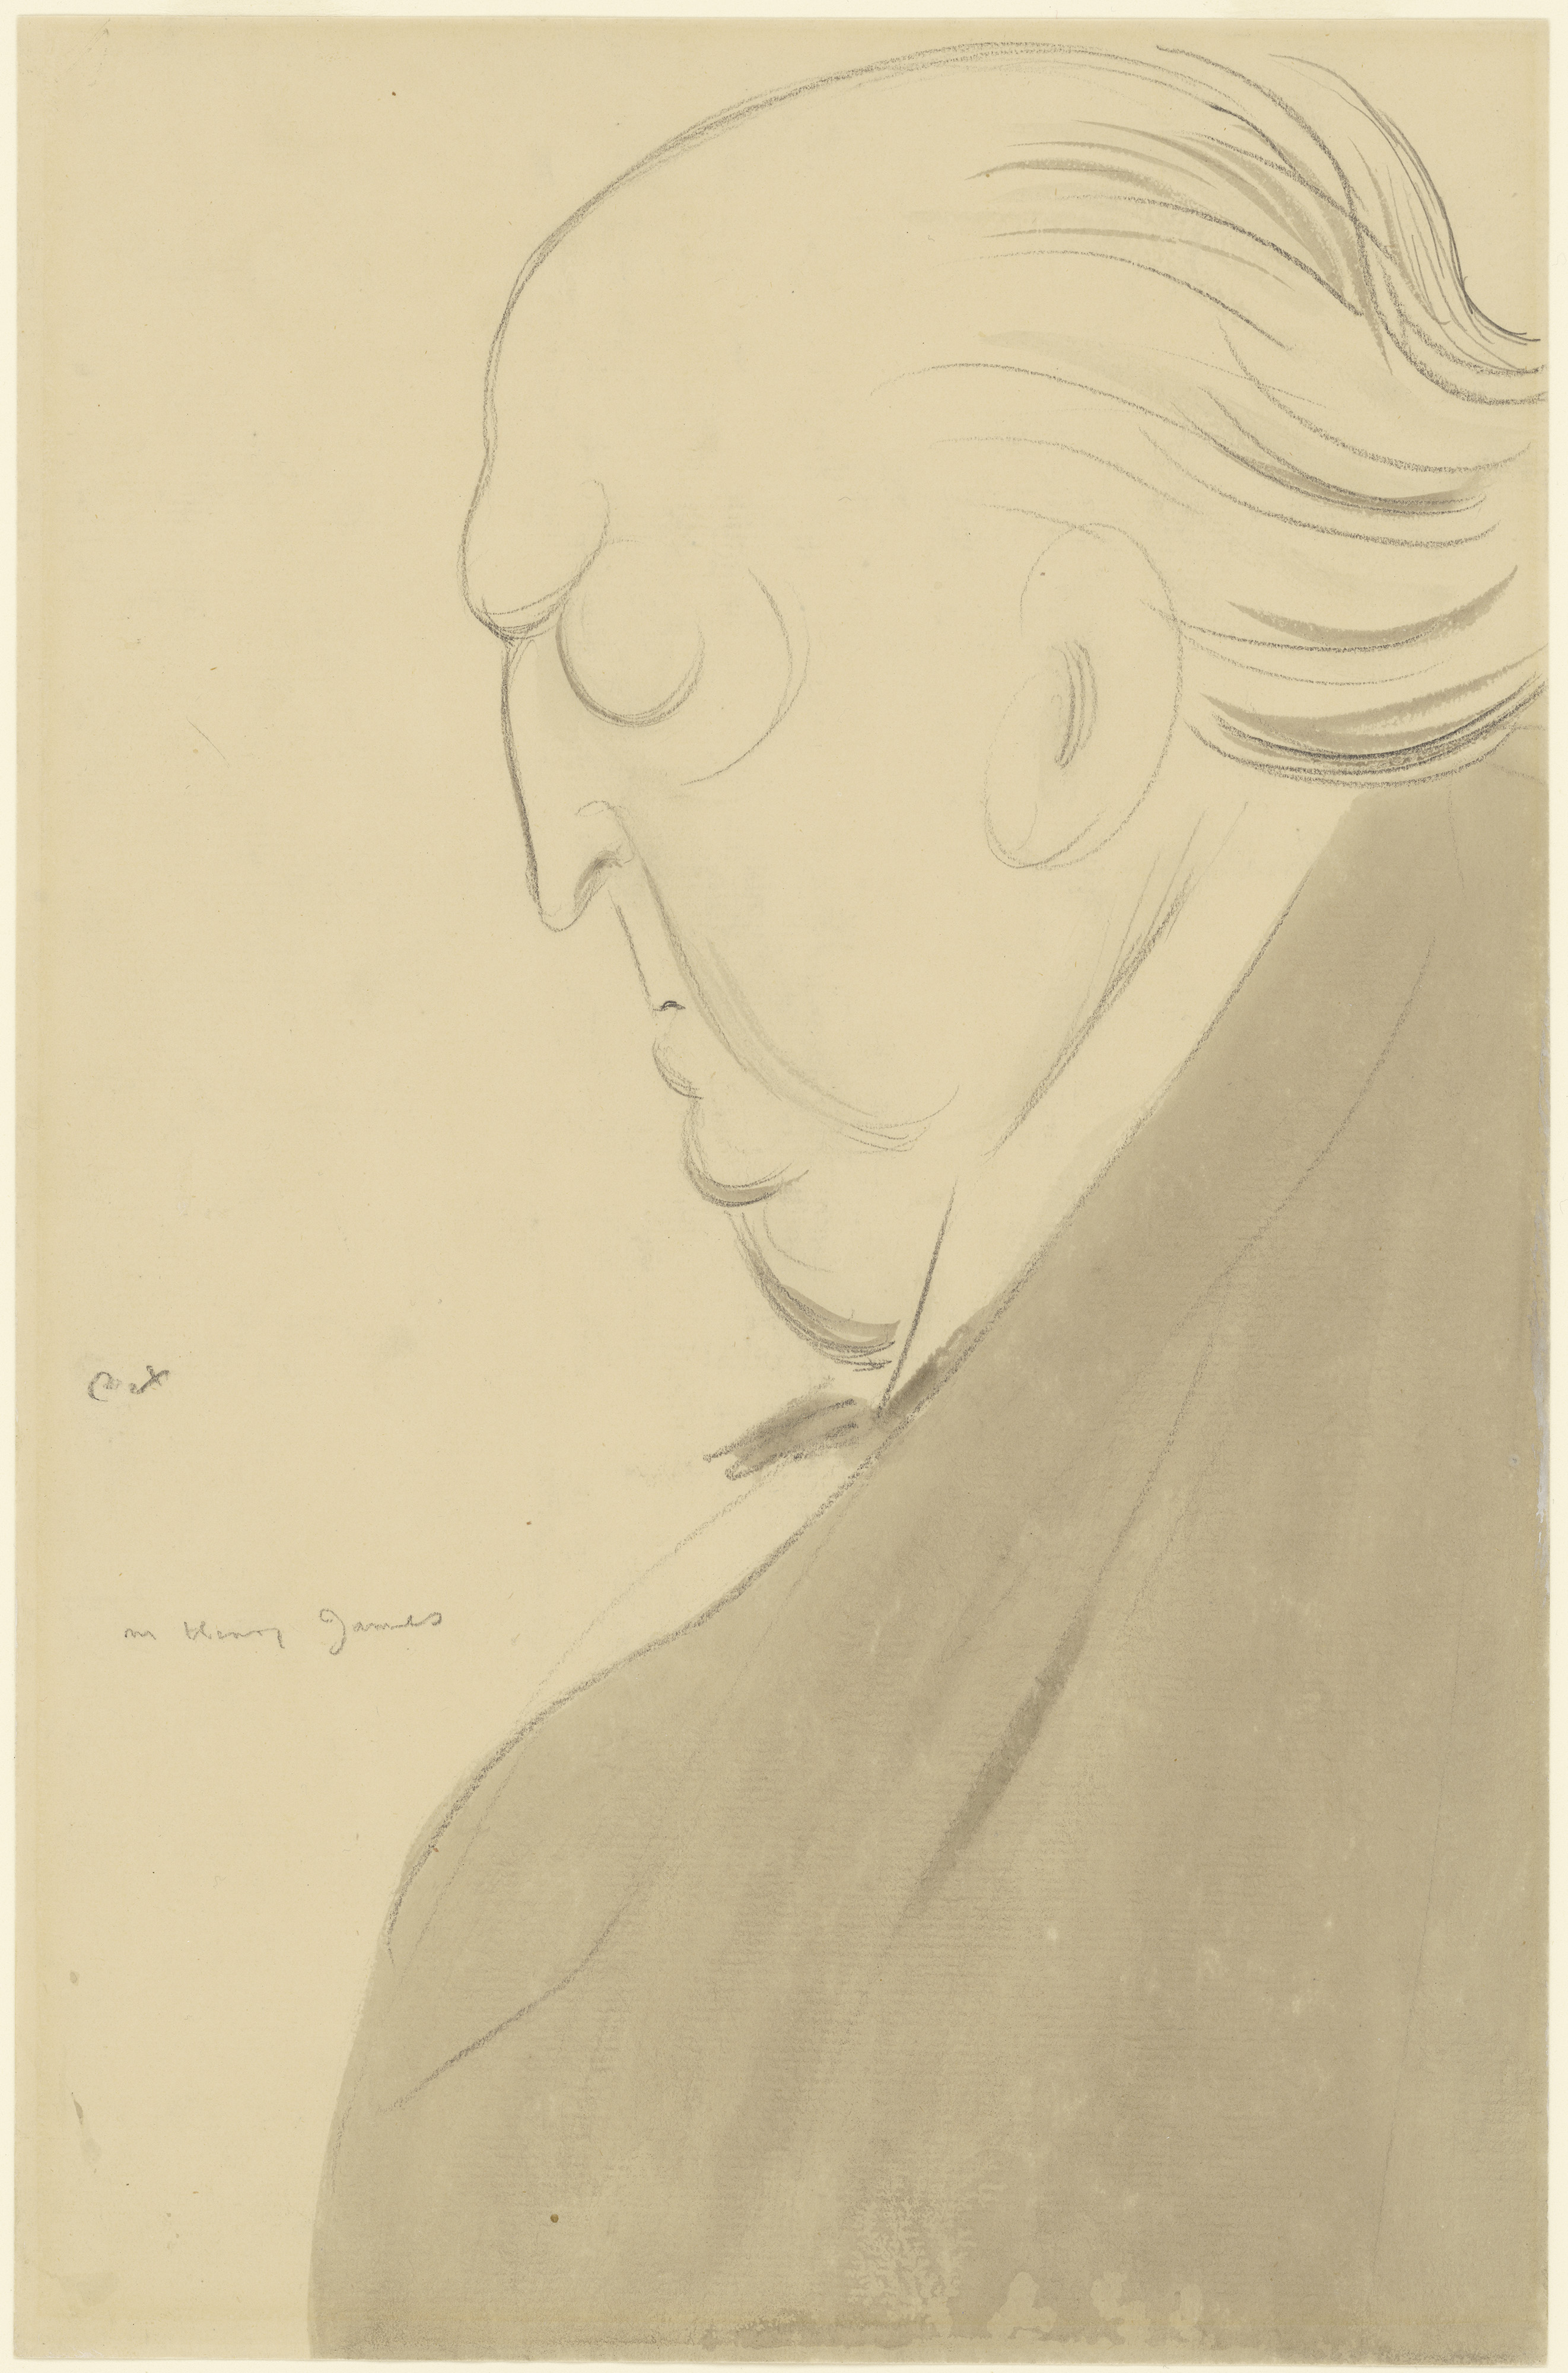 Drawing of an large old man in profile